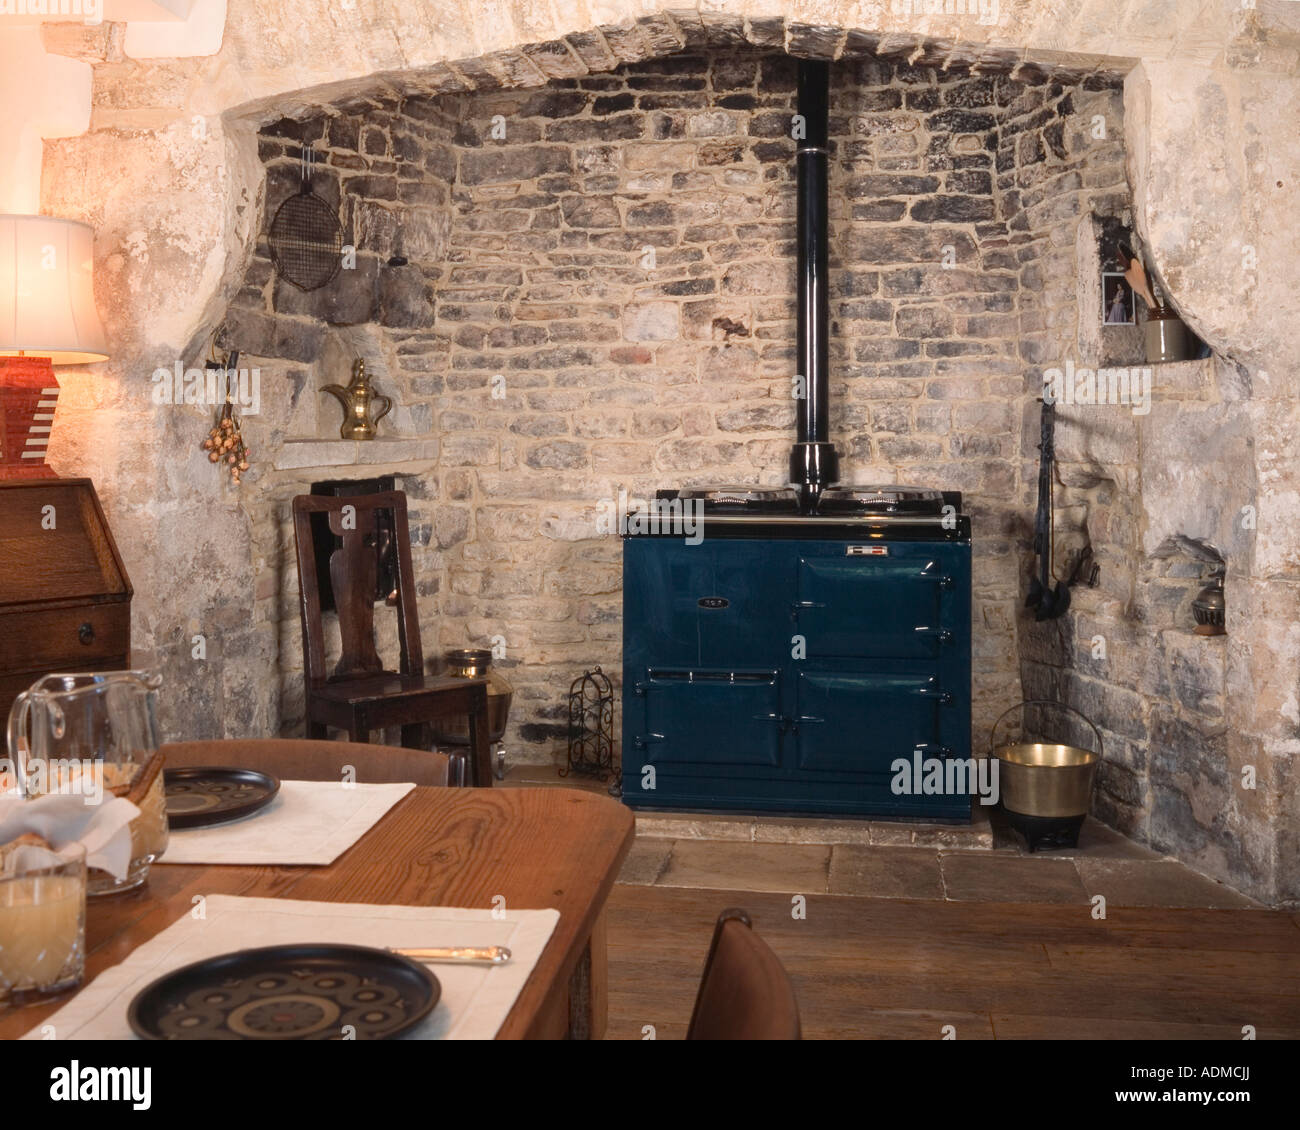 old stone fireplace. Domestic interior kitchen  old stone fieplace and aga cooker Stock